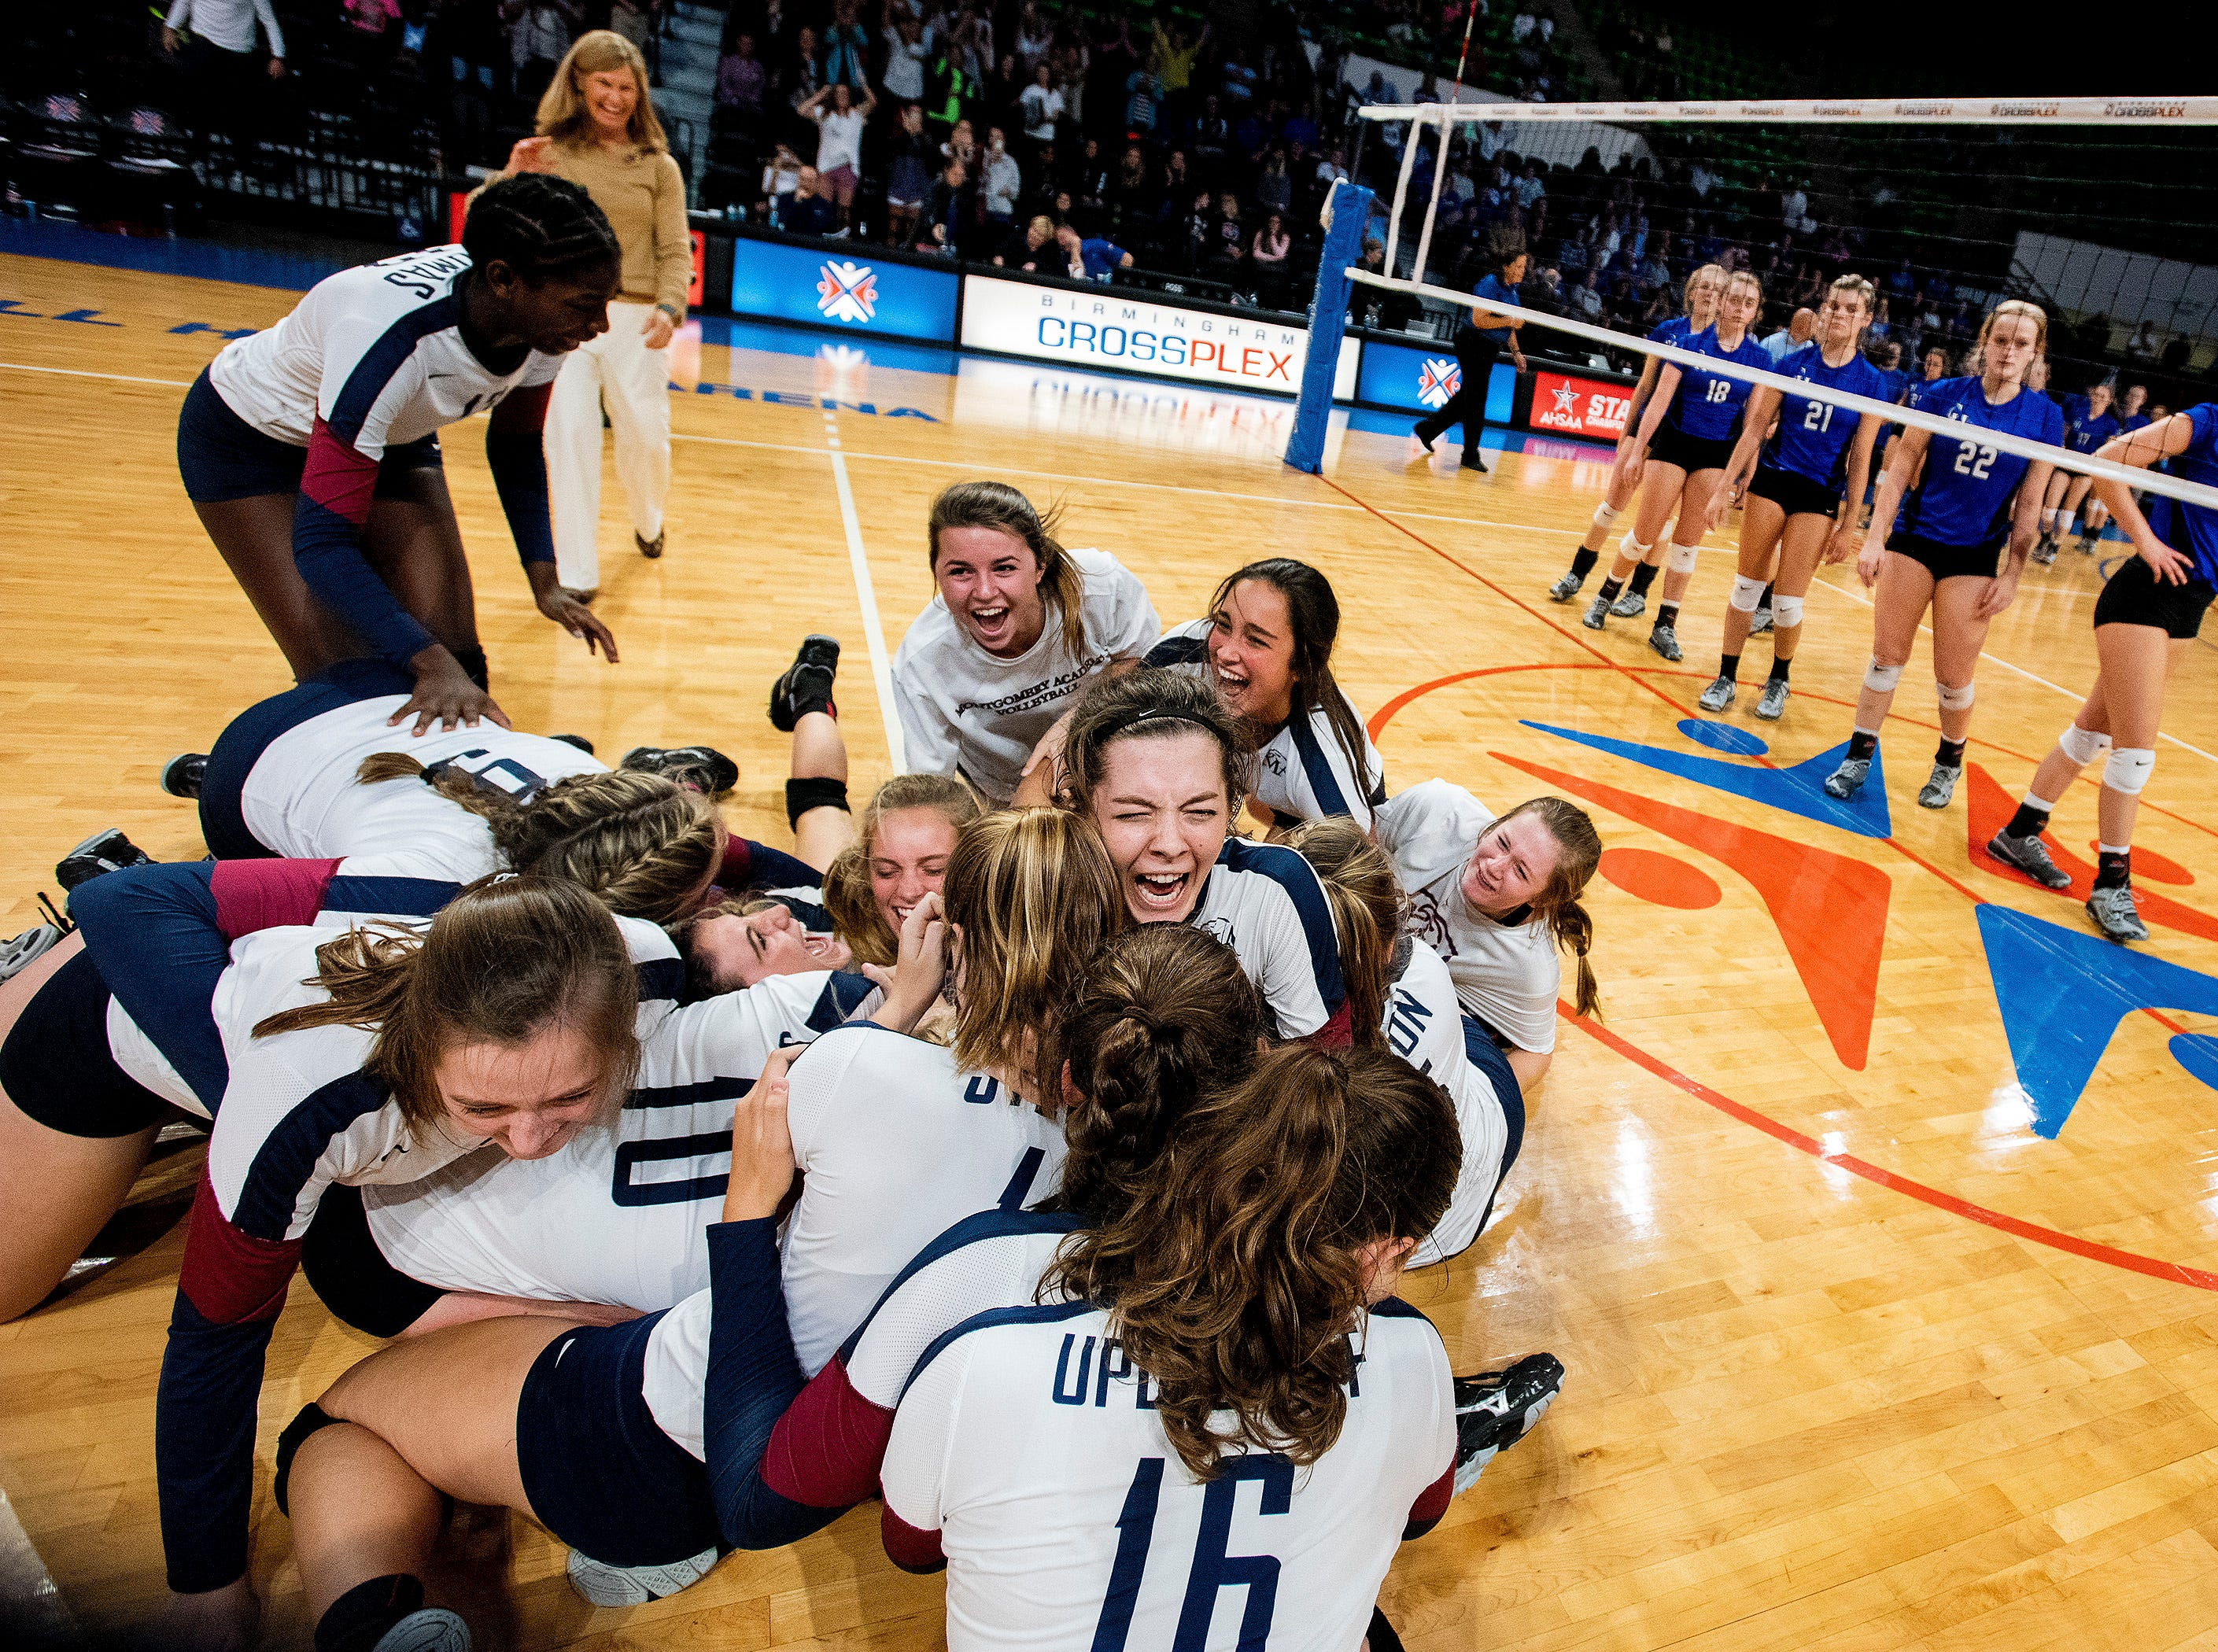 Montgomery Academy players celebrate winning the 3A State Championship after defeating Carbon Hill in the AHSAA State Volleyball Finals in Birmingham, Ala., on Thursday November 1, 2018.